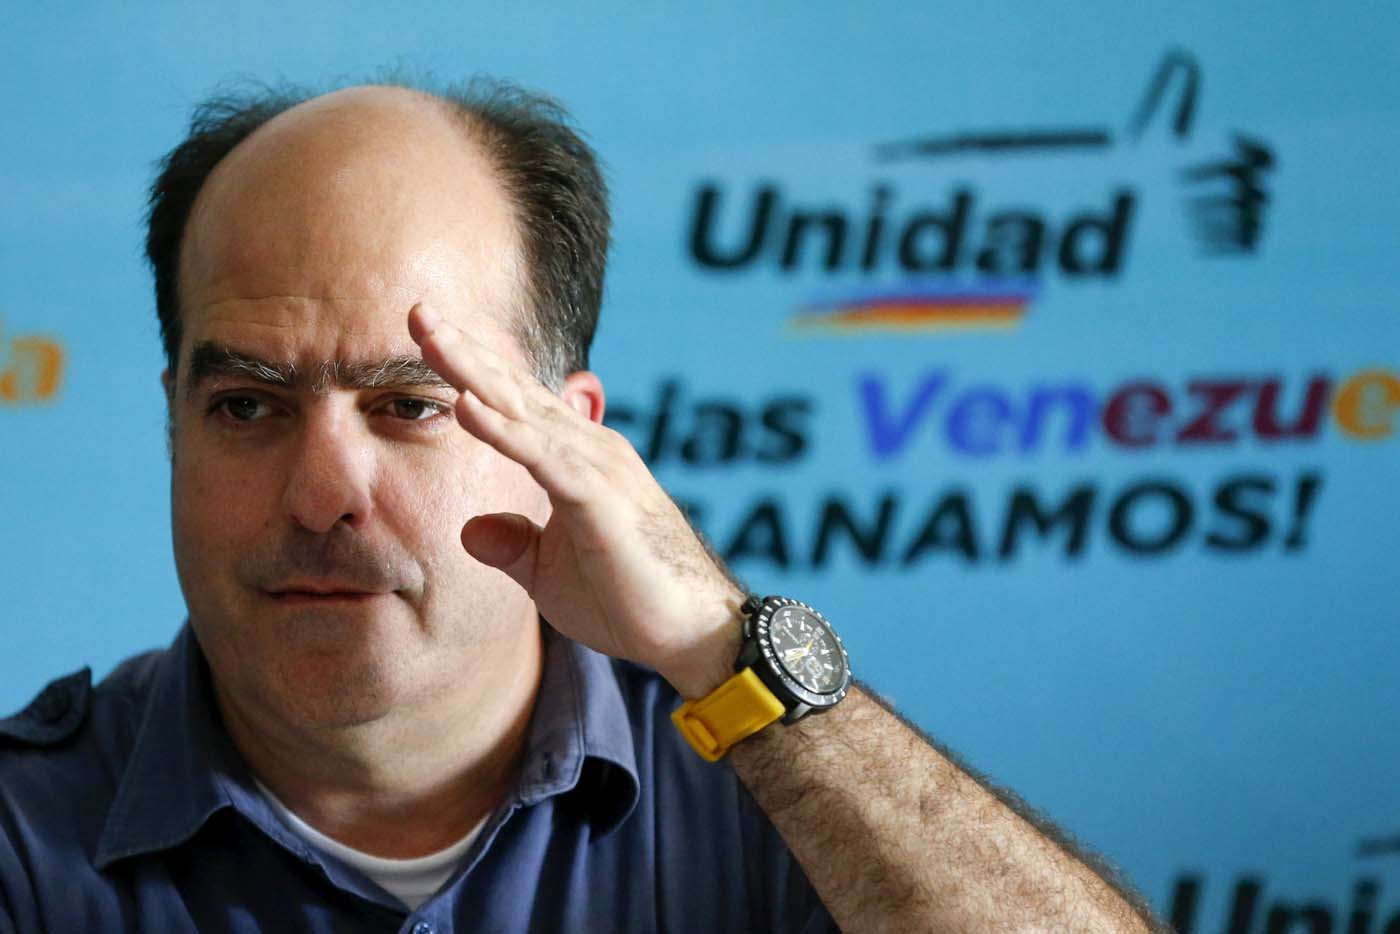 Julio Borges, a new elected deputy from Venezuelan coalition of opposition parties (MUD), gestures during a news conference in Caracas, Venezuela, December 11, 2015. REUTERS/Carlos Garcia Rawlins